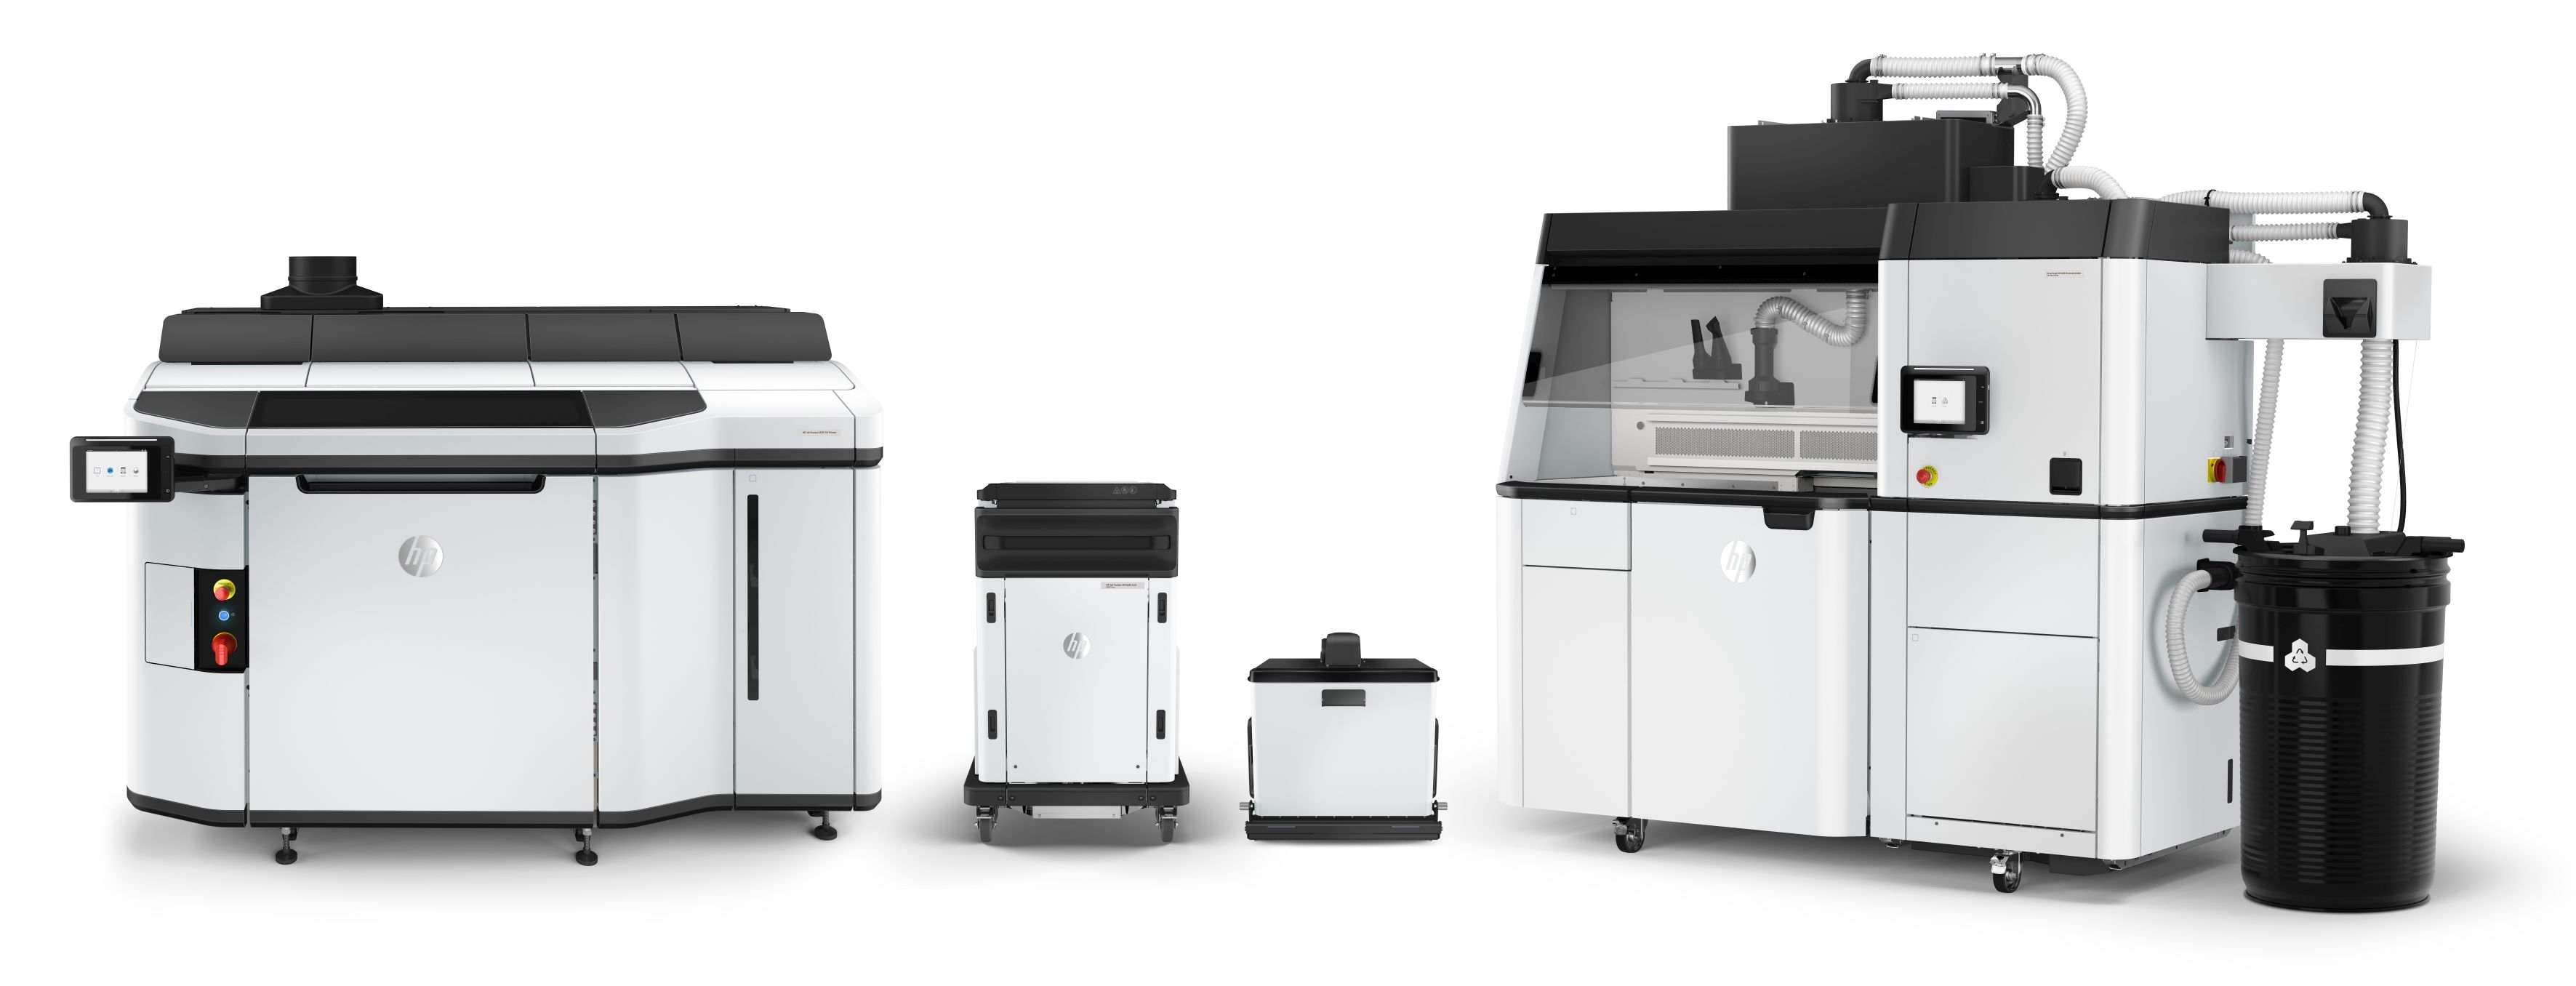 3DPRINTUK's investment in the HP Multi Jet Fusion machine is part of a £1 million expansion to enhance its 3D printing capabilities in London. Photo via HP.